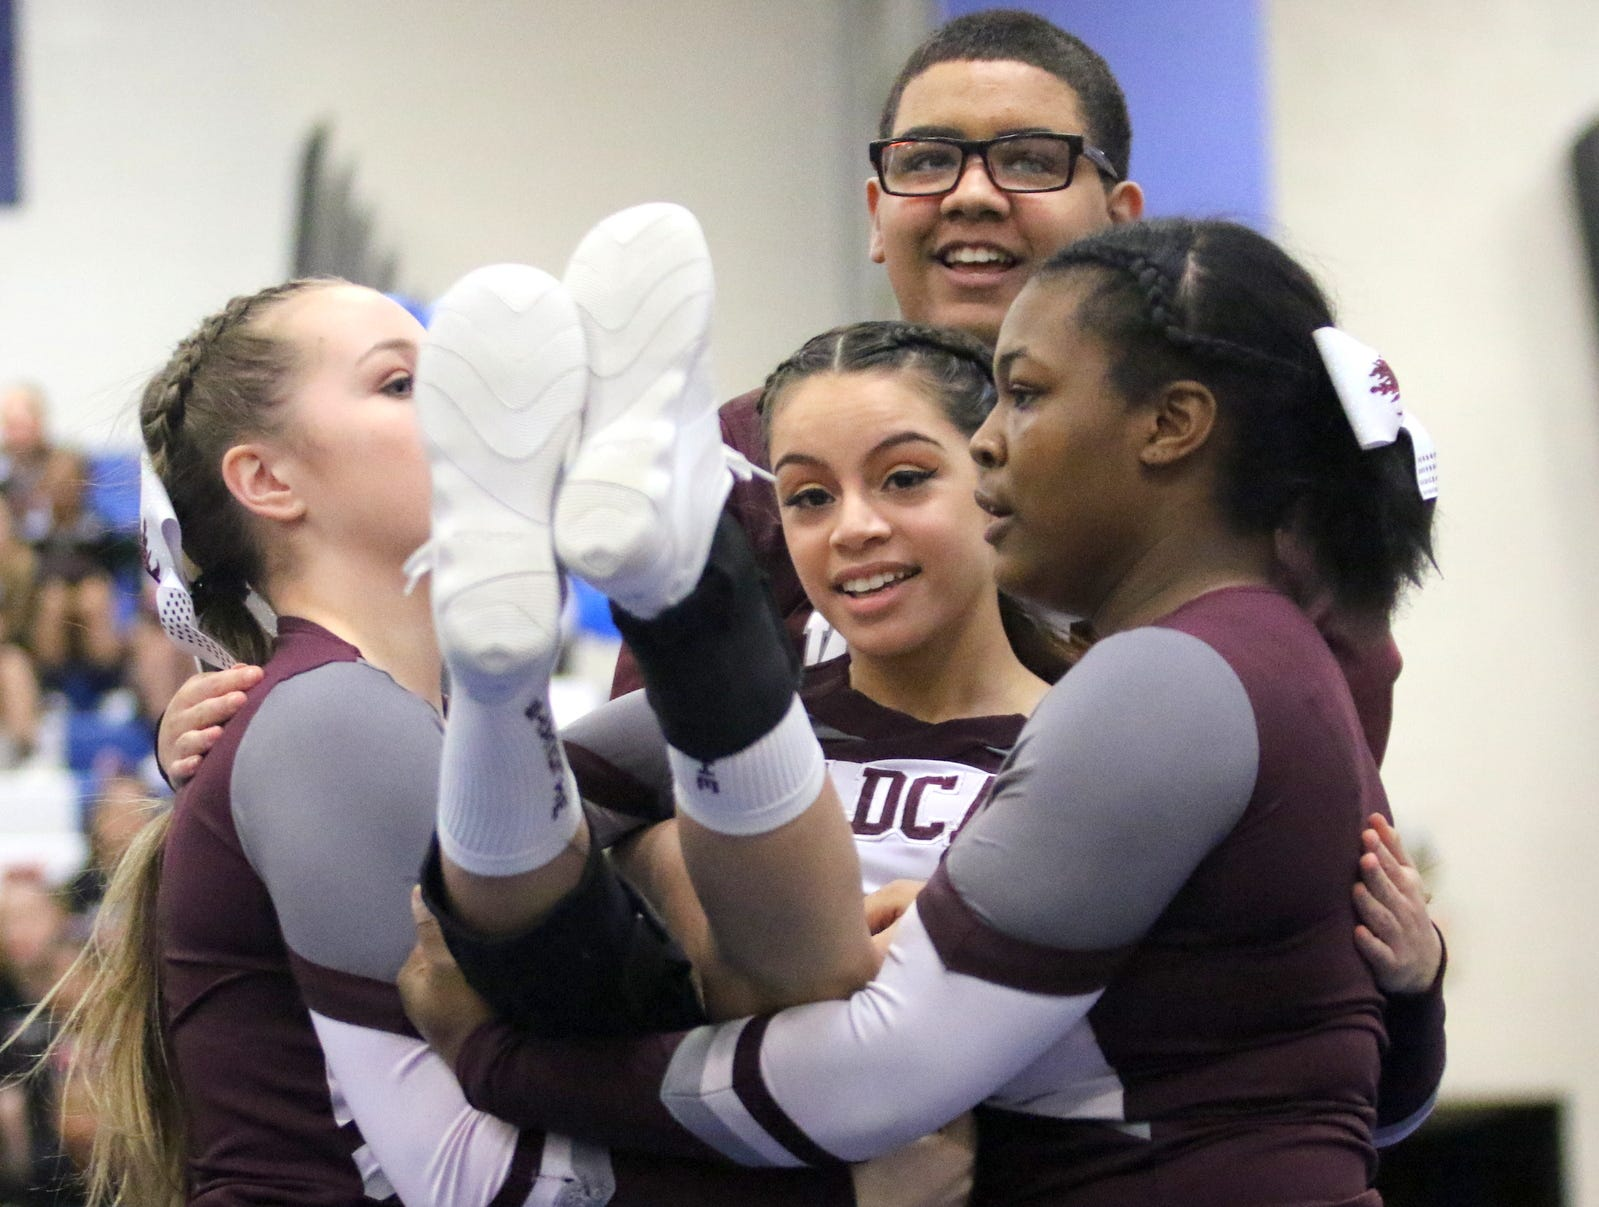 Johnson City varsity cheerleaders compete at the STAC Winter Cheer Championships on Feb. 16, 2019 at Horseheads Middle School.